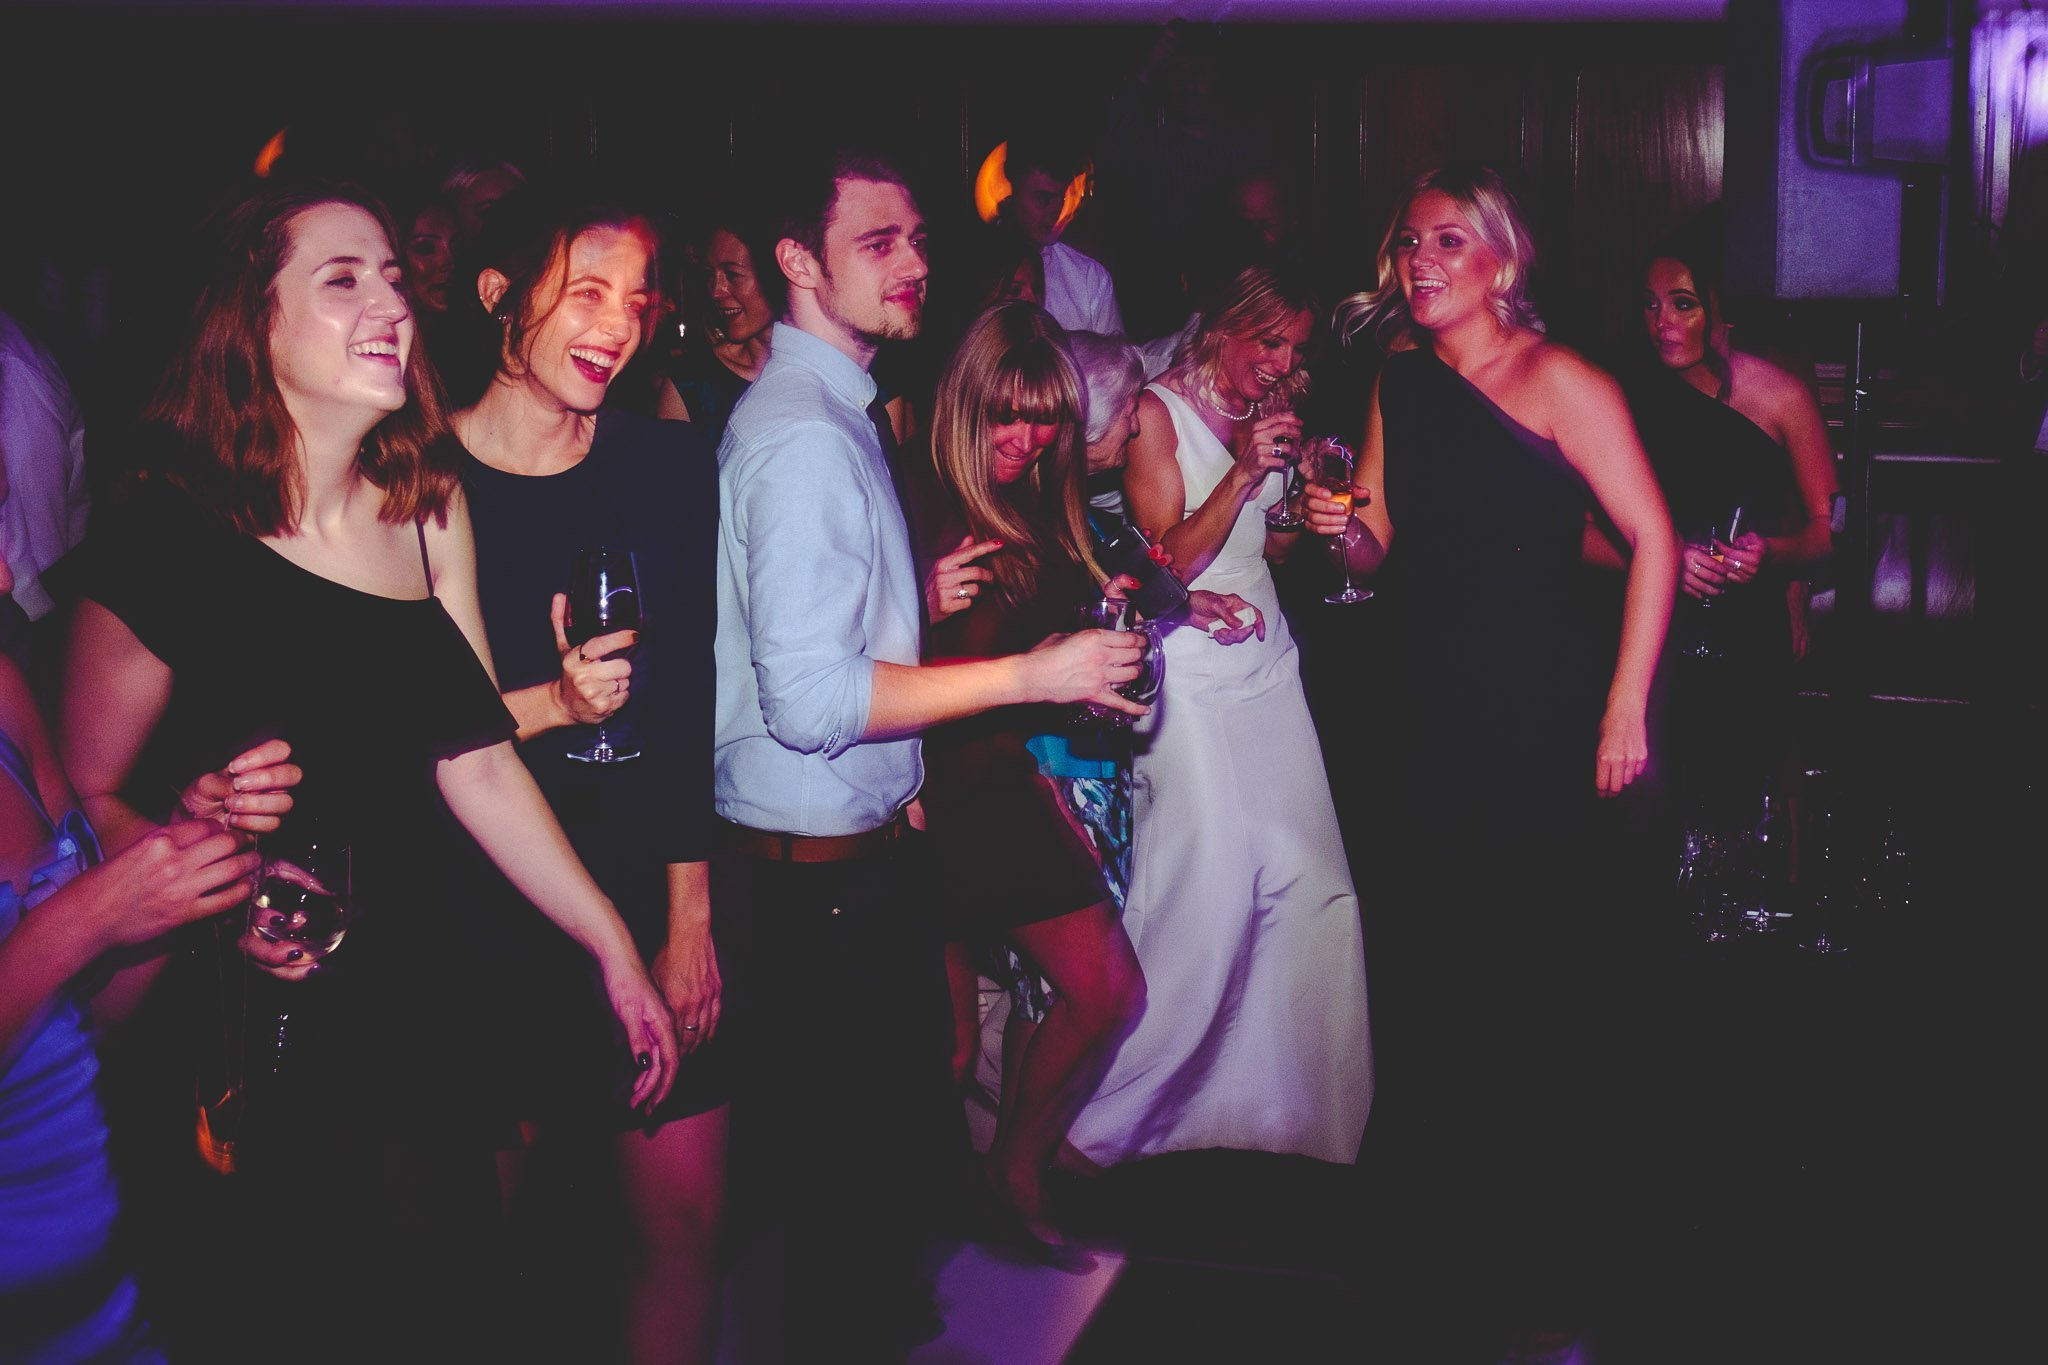 Dancing wedding guests at Hawksmoor Steakhouse in Guildhall London